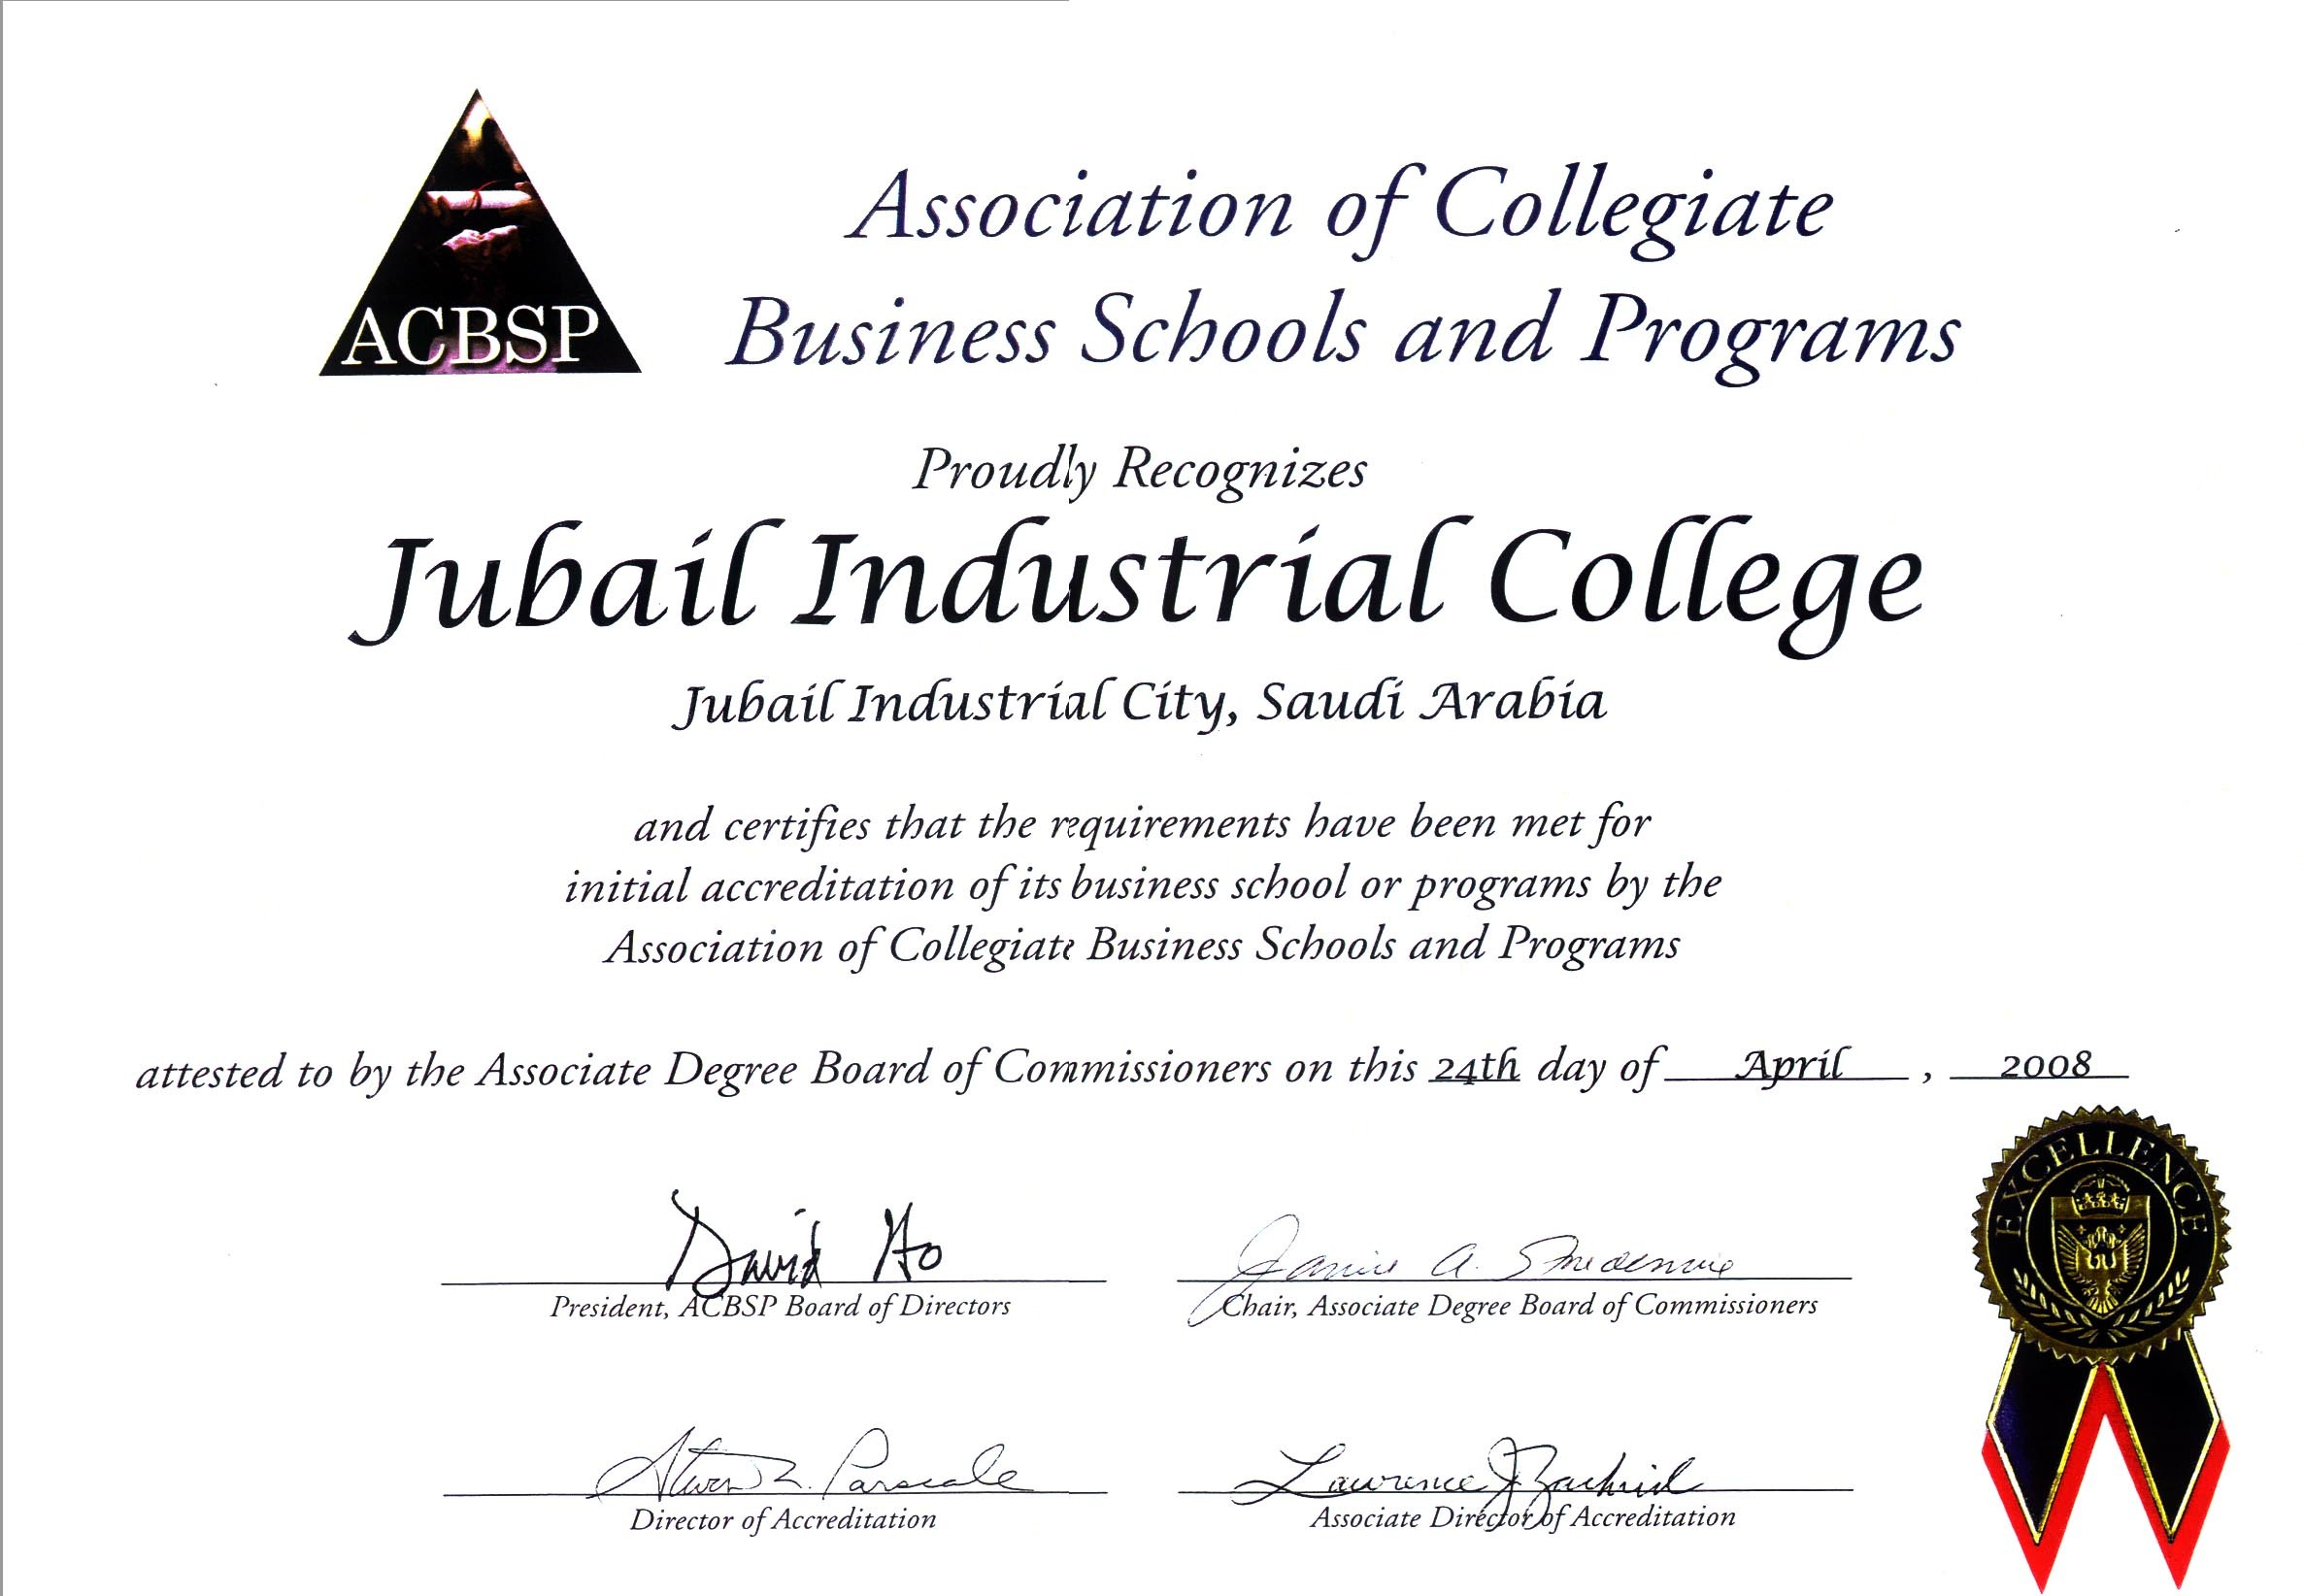 Mit Quality Assurance Report 2016 Acbsp Accreditation Certificate